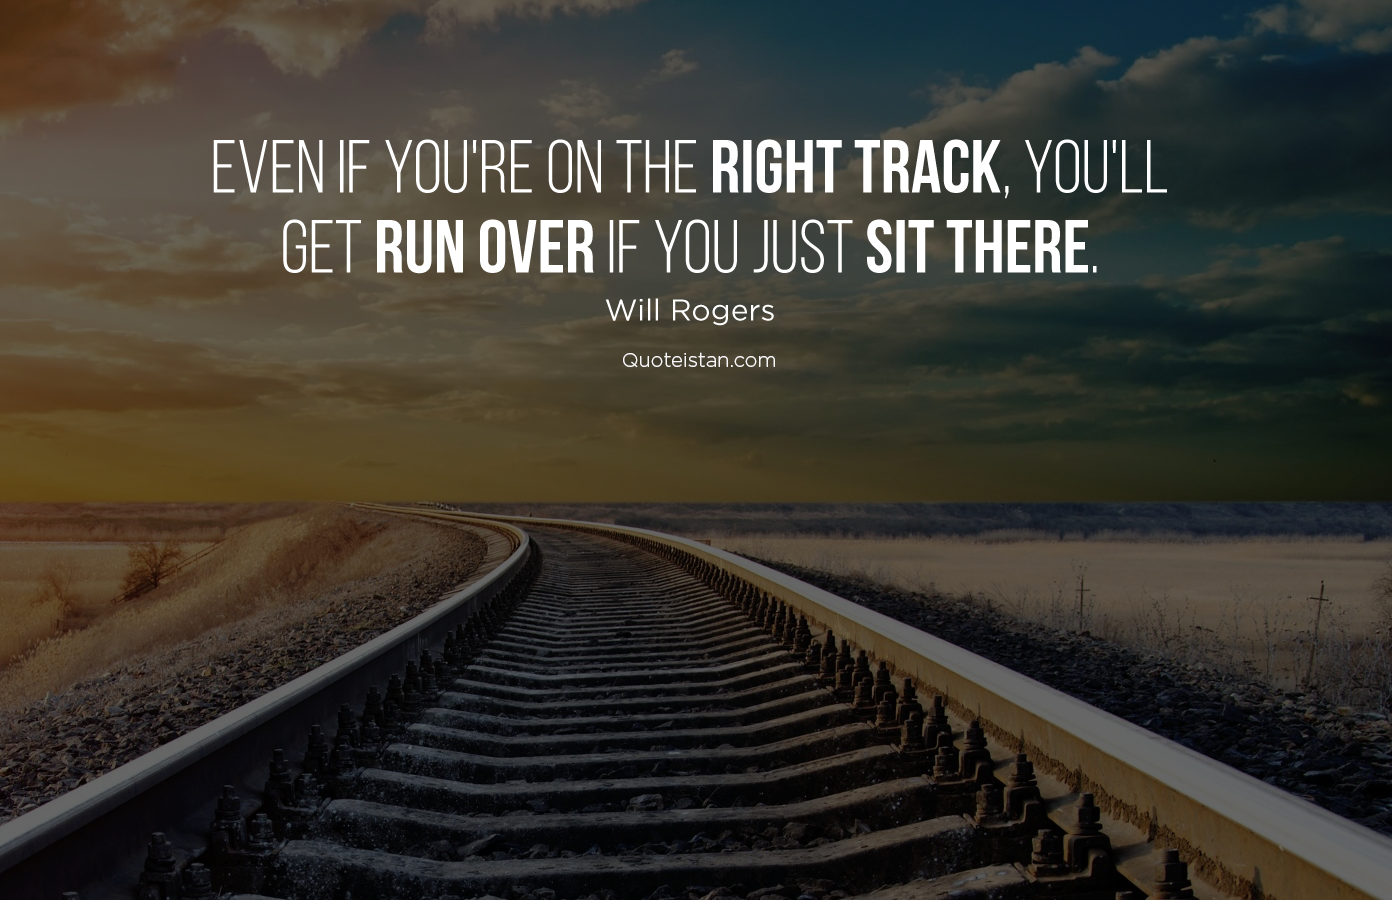 Even if you're on the right track, you'll get run over if you just sit there. Will Rogers #quotes